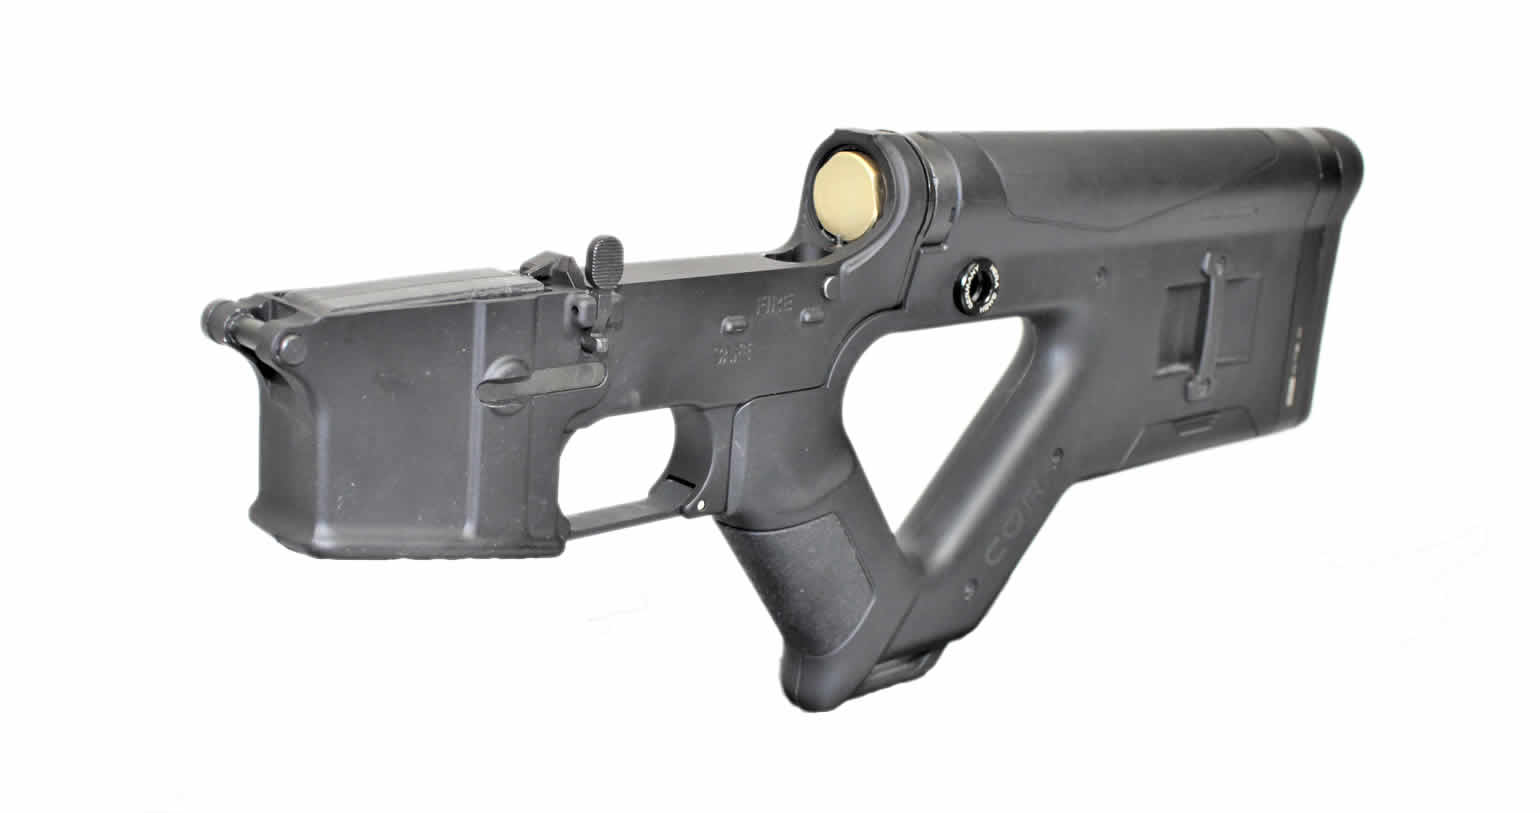 ar-15-lower-cbc-industries-complete-lower-hera-cqr-buttstock-80-percent